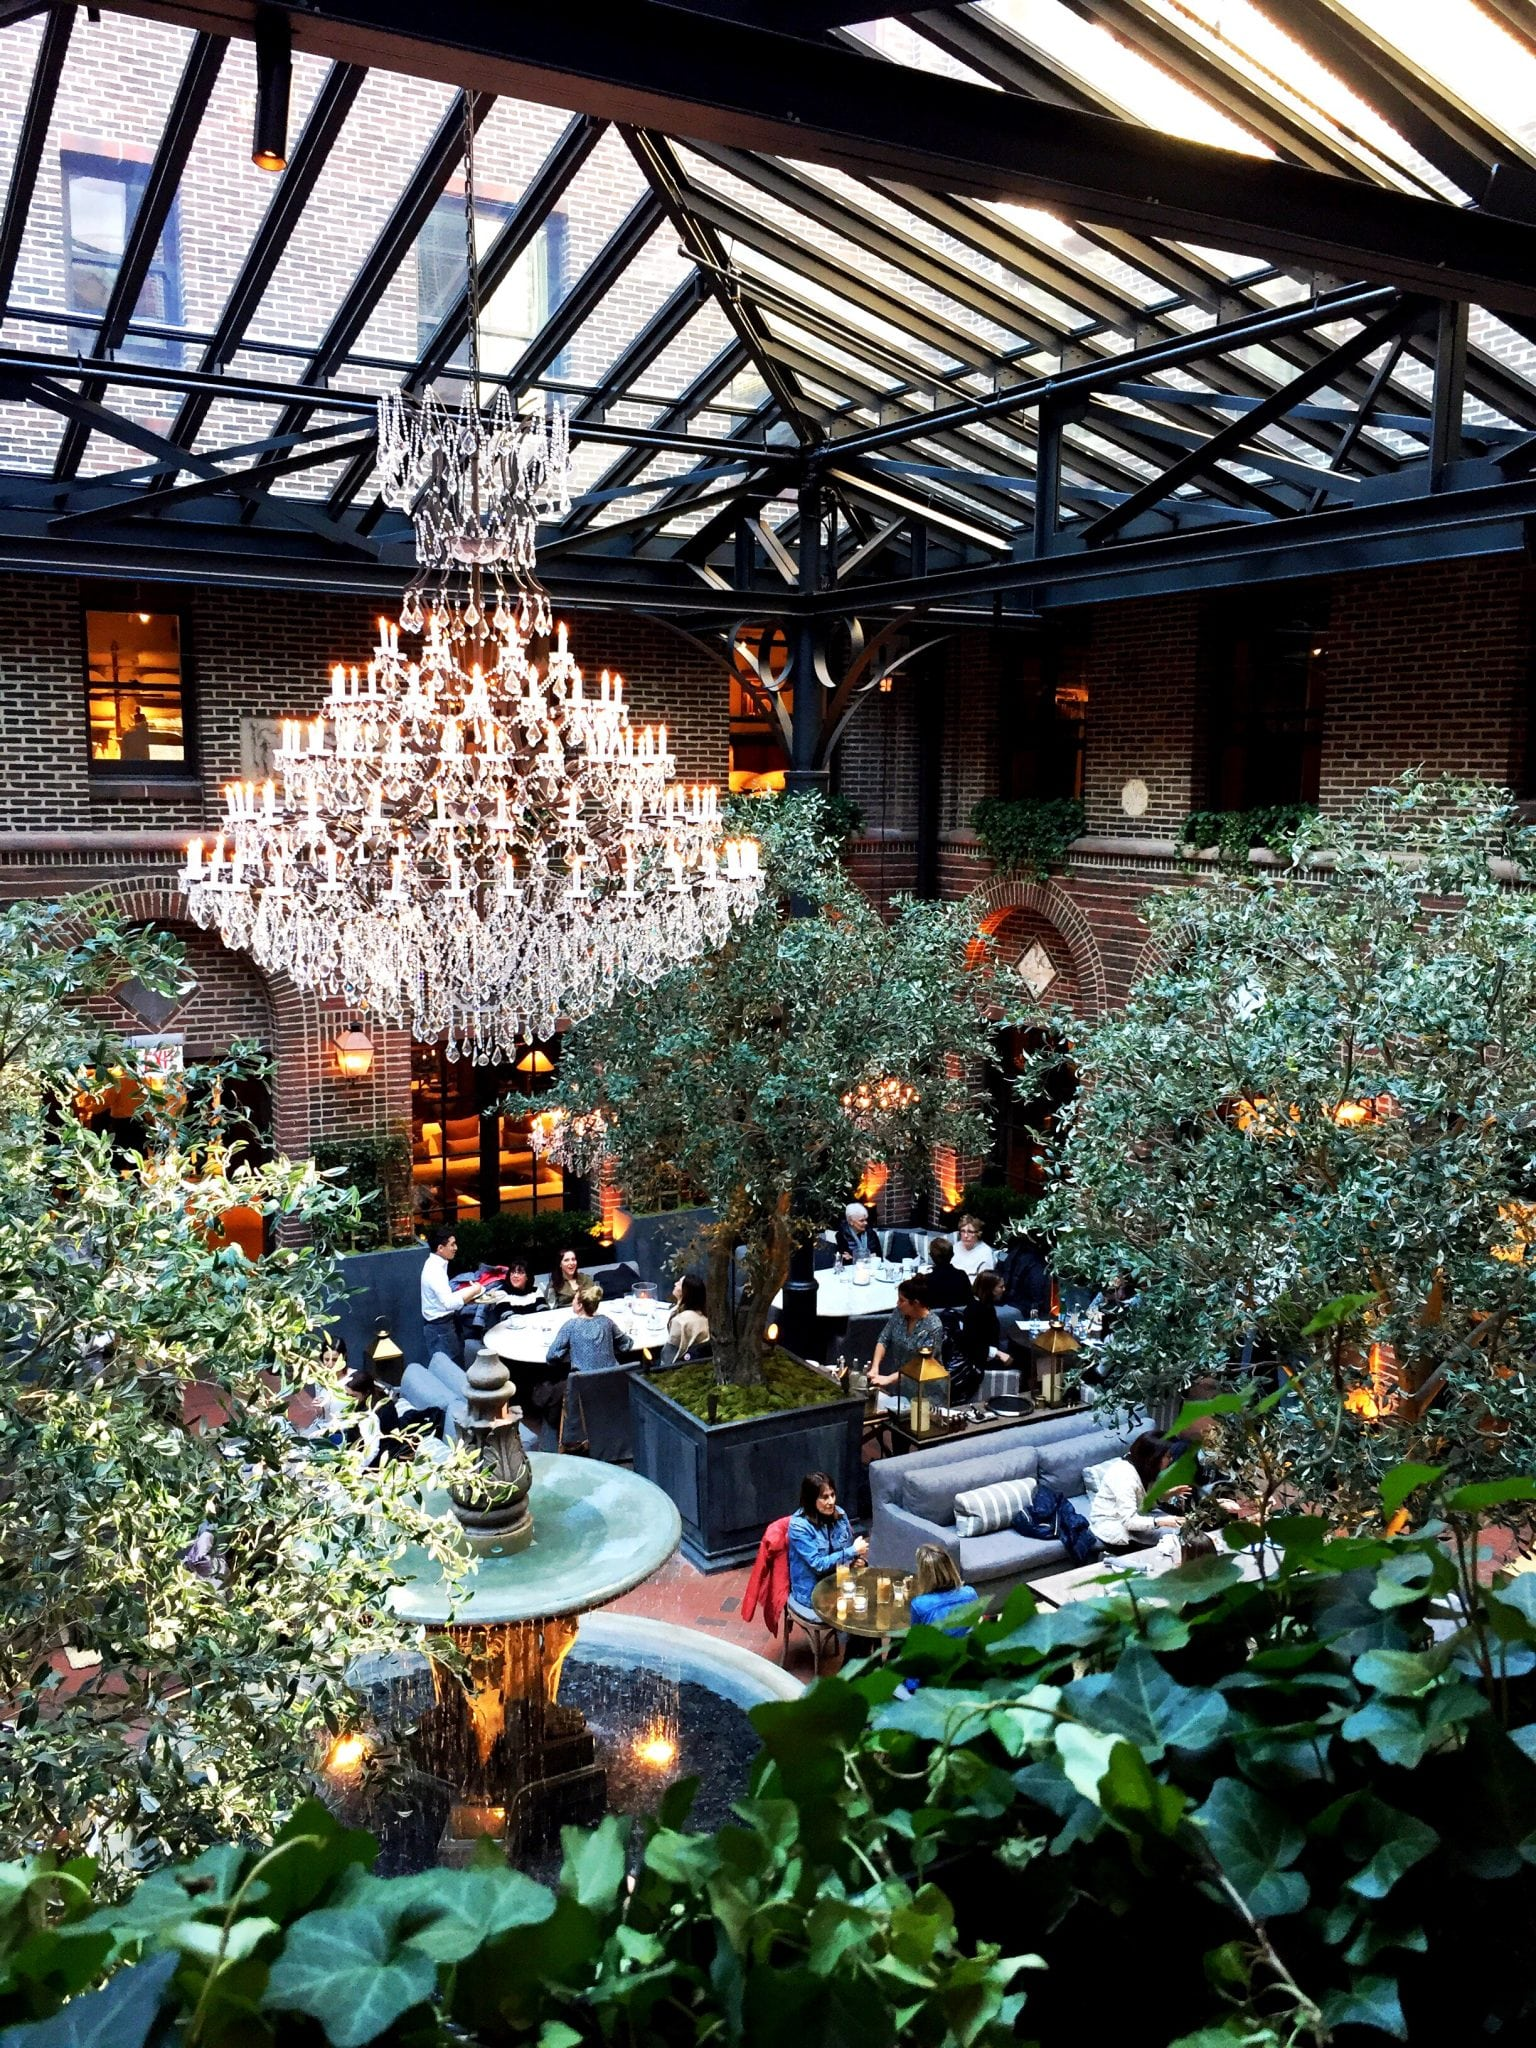 Get an Instagram at Restoration Hardware and/or Soho House